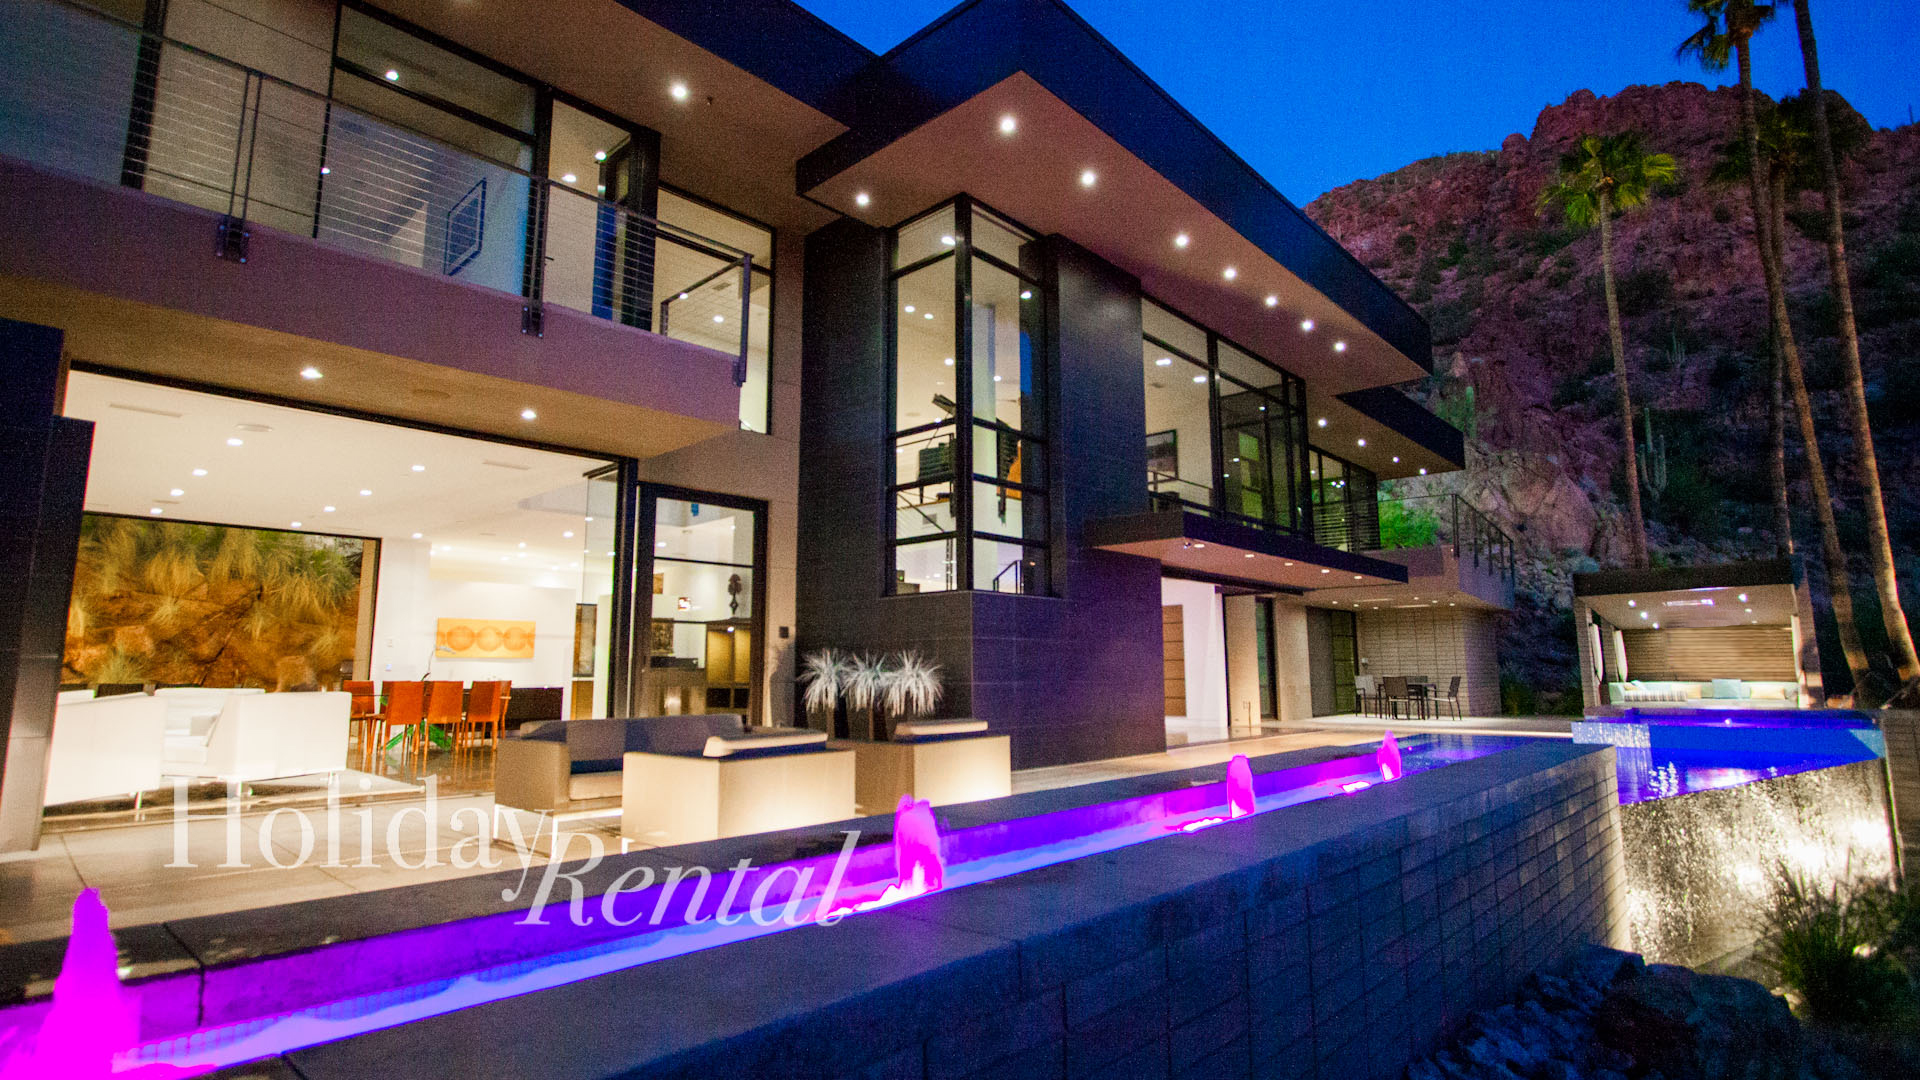 Camelback Luxury Best Location in Old Town! Views of City! Stay on Top!